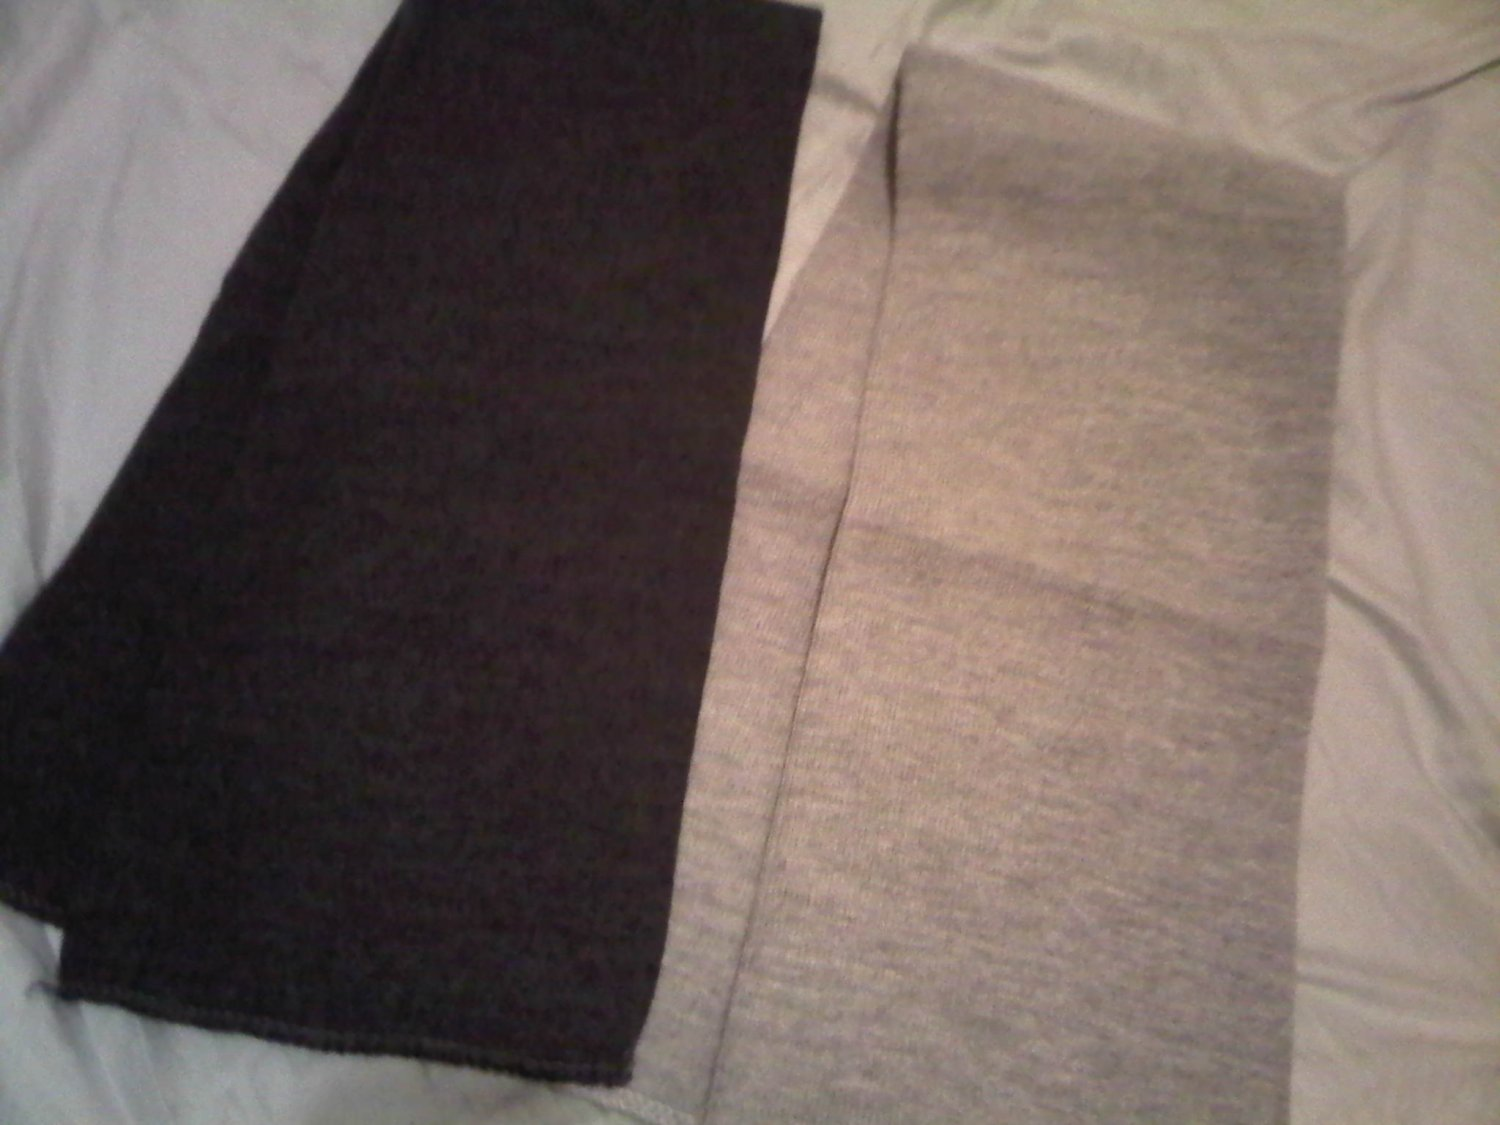 THICK GRAY OR DARK GRAY COLLEGE SCARF COTTON WOMEN'S MEN'S ACCESSORY CLOTHING CLOTHES